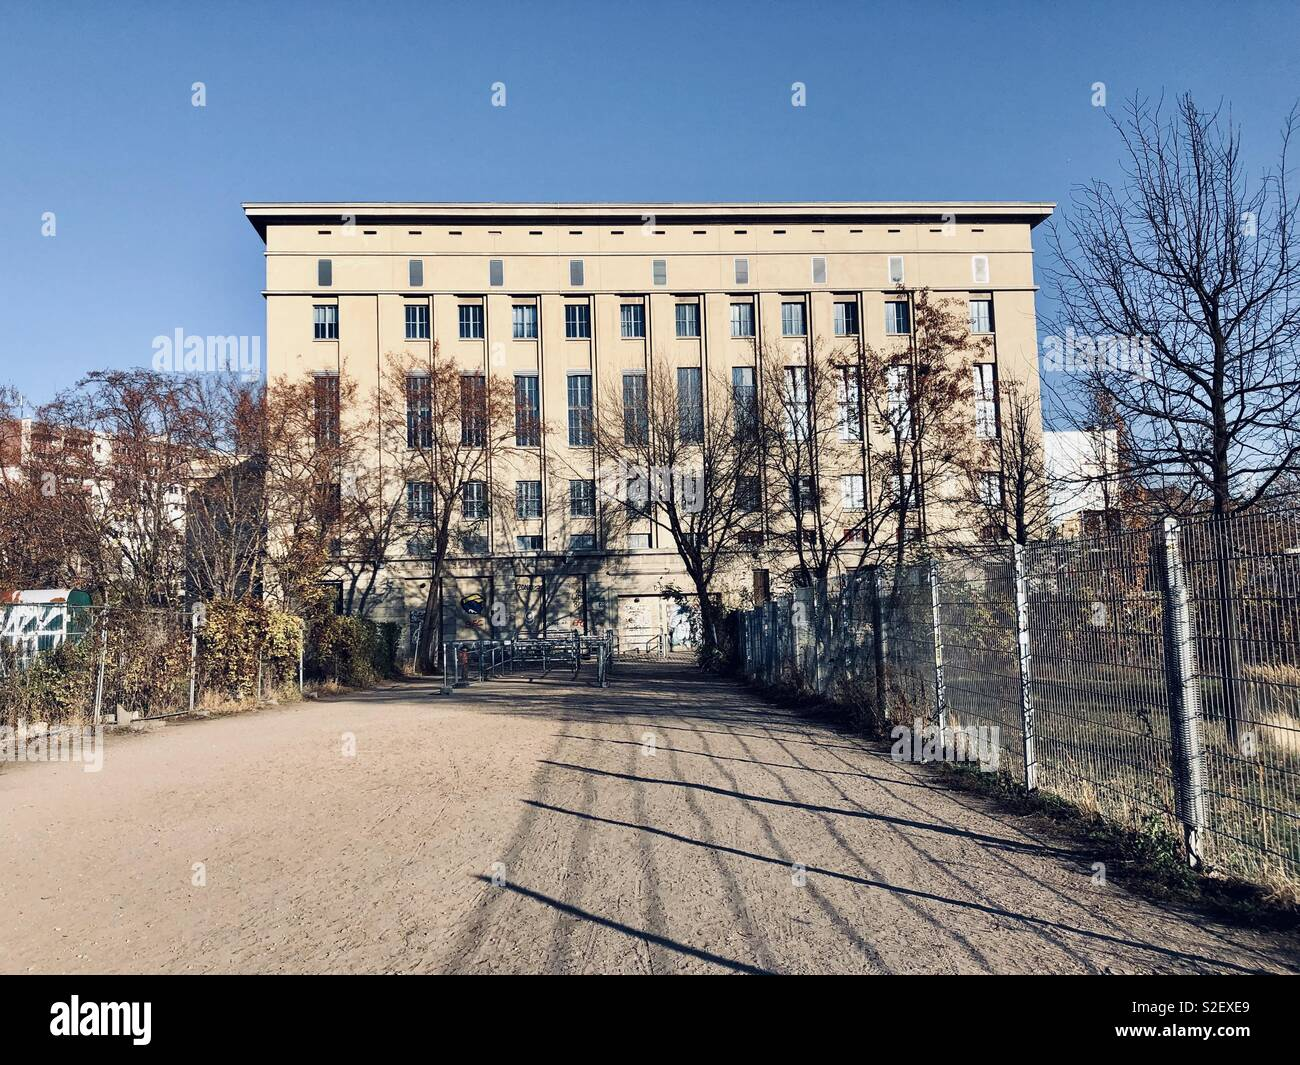 The building of world-renowned club 'Berghain' in Berlin by day. - Stock Image